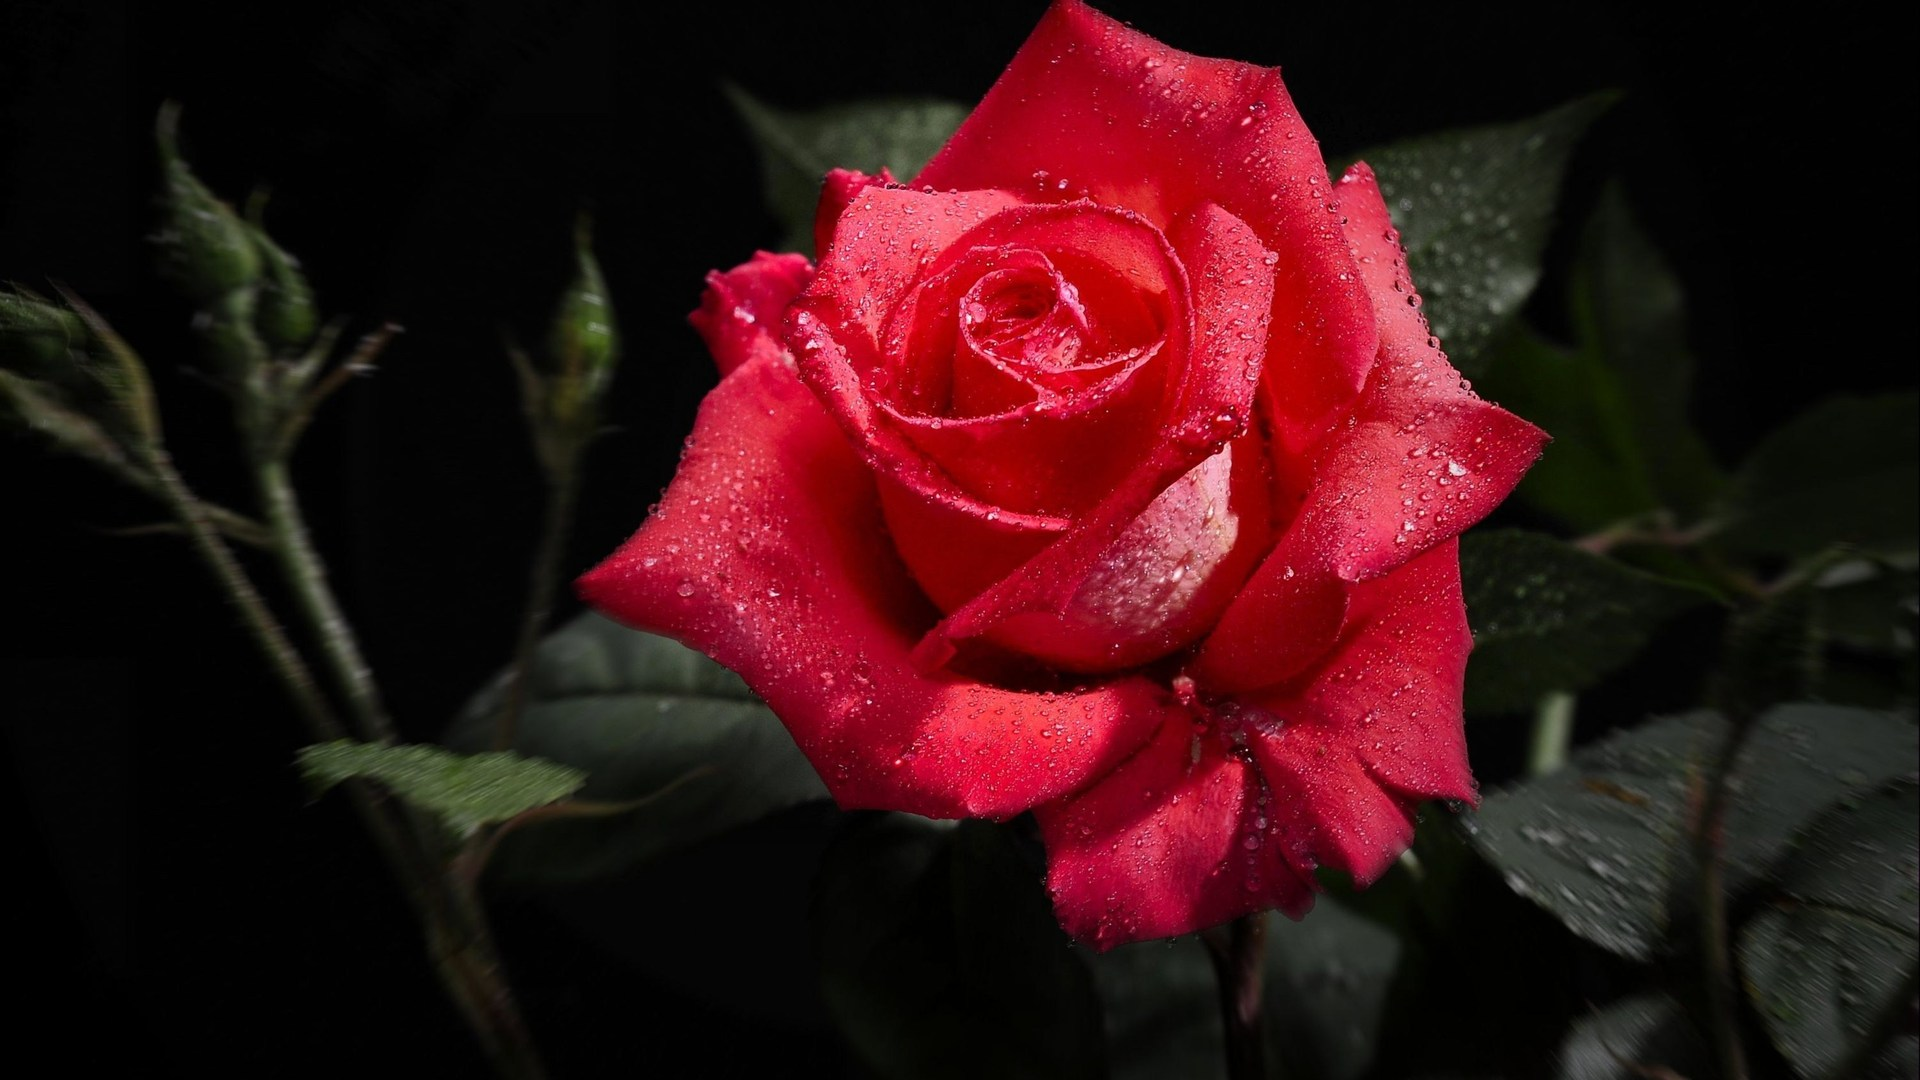 Hd wallpaper rose - Hd Wallpaper Rose Red Rose Wallpaper Download